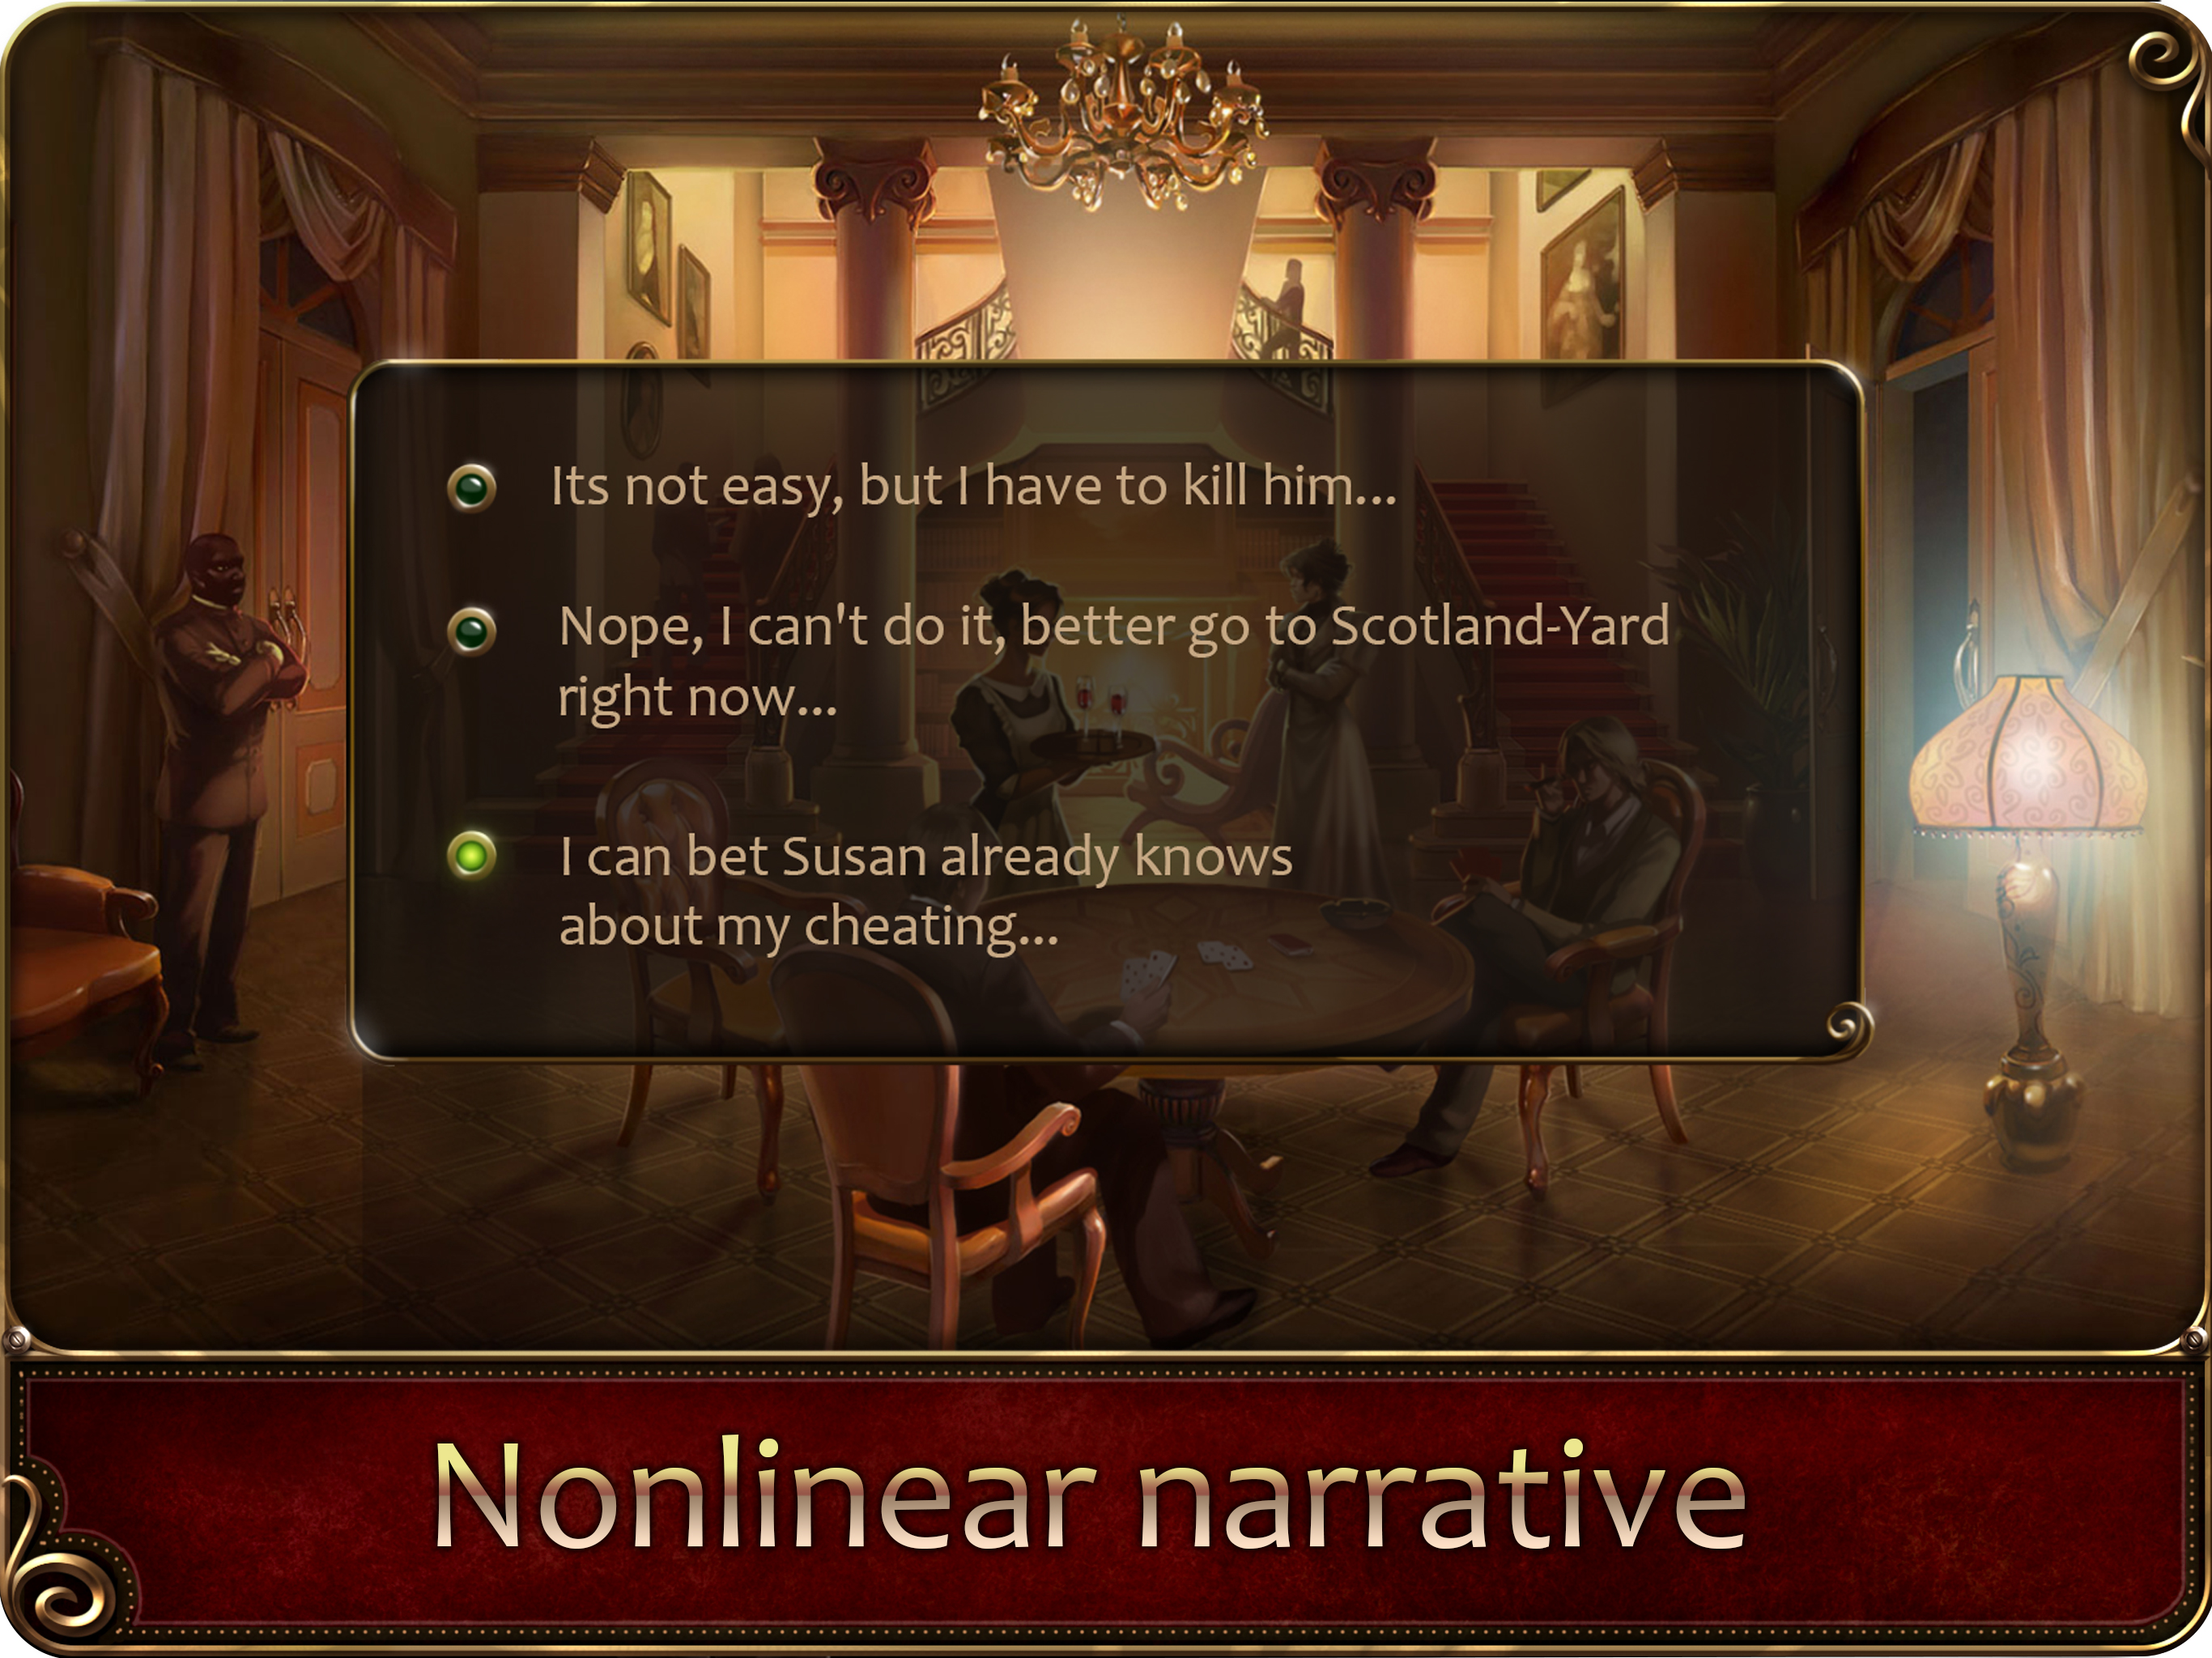 3_nonleanear20narrative